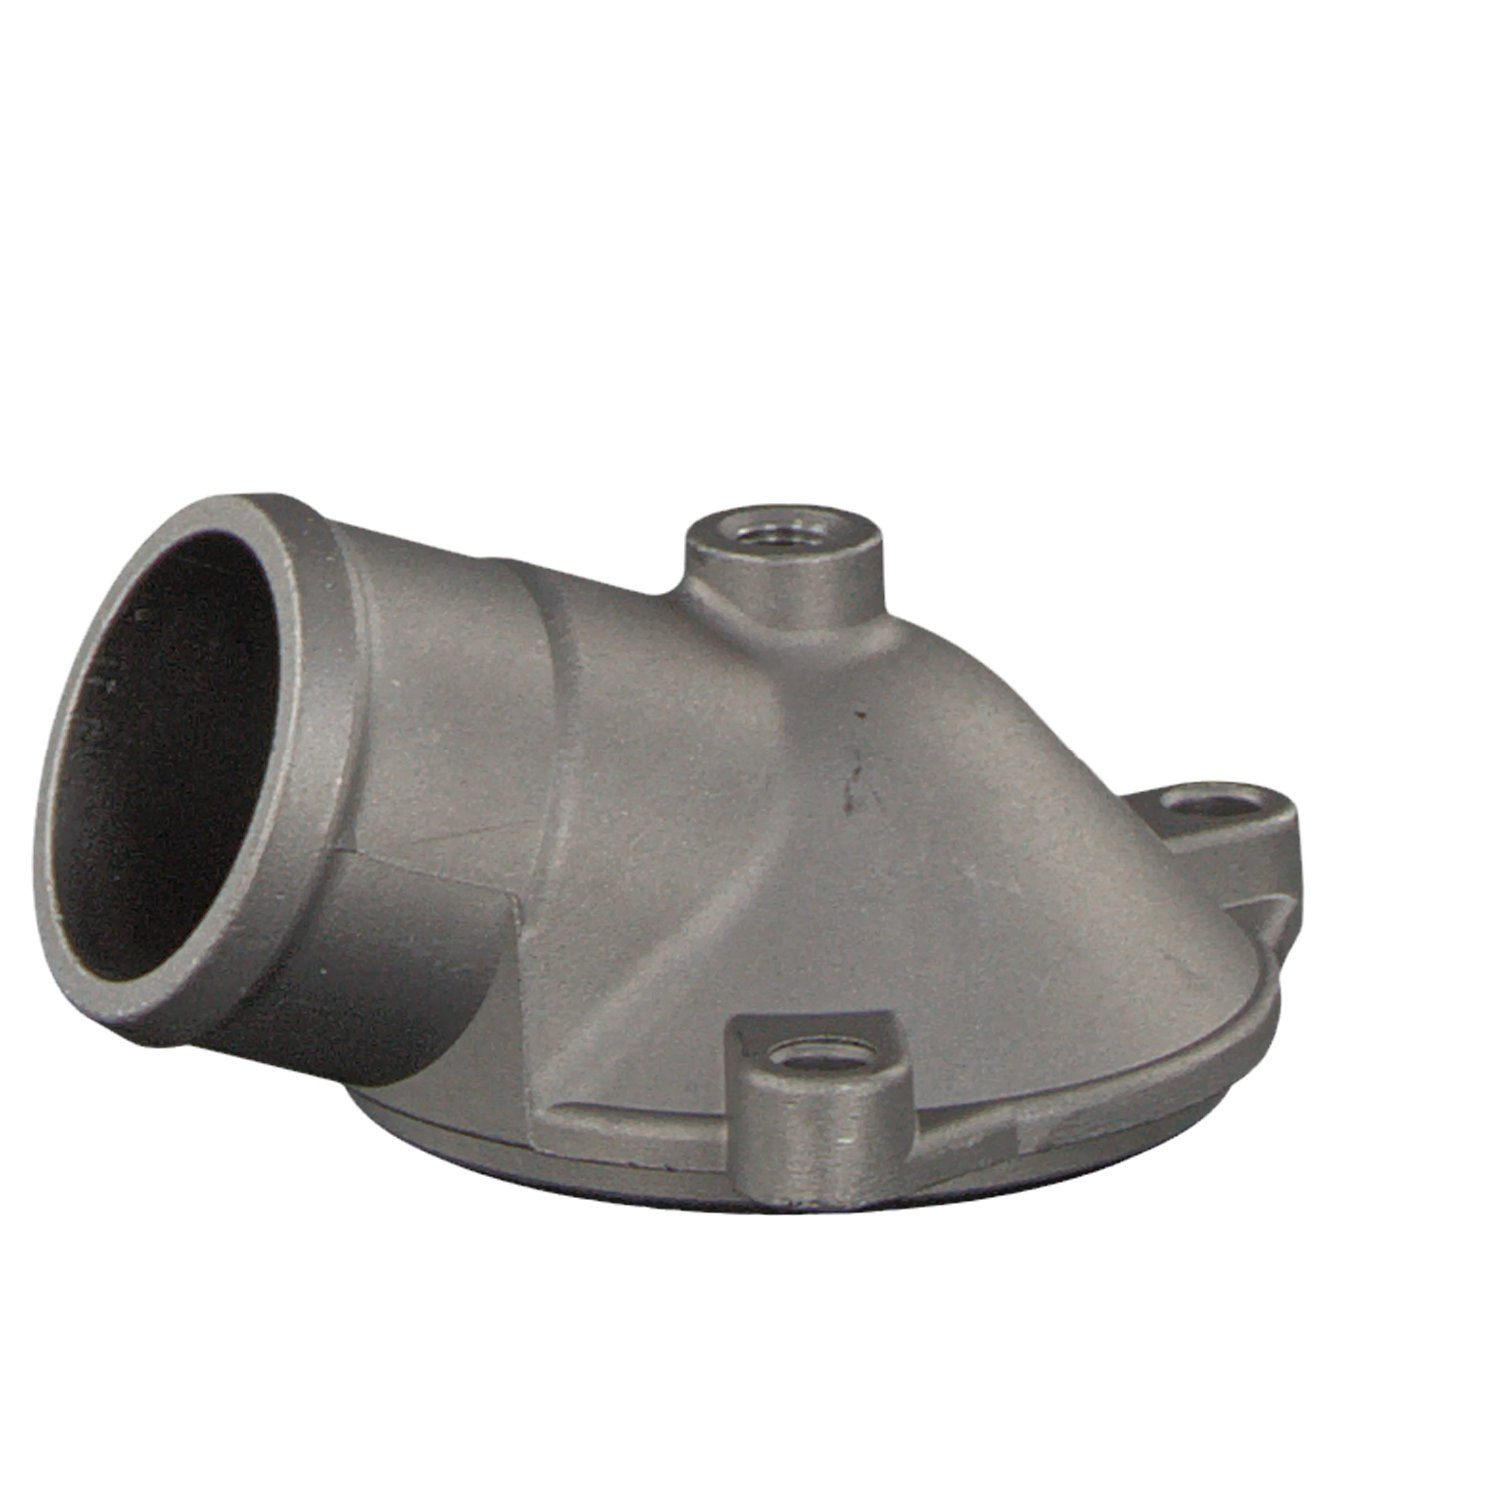 febi bilstein 30080 Thermostat Housing without seal ring pack of one